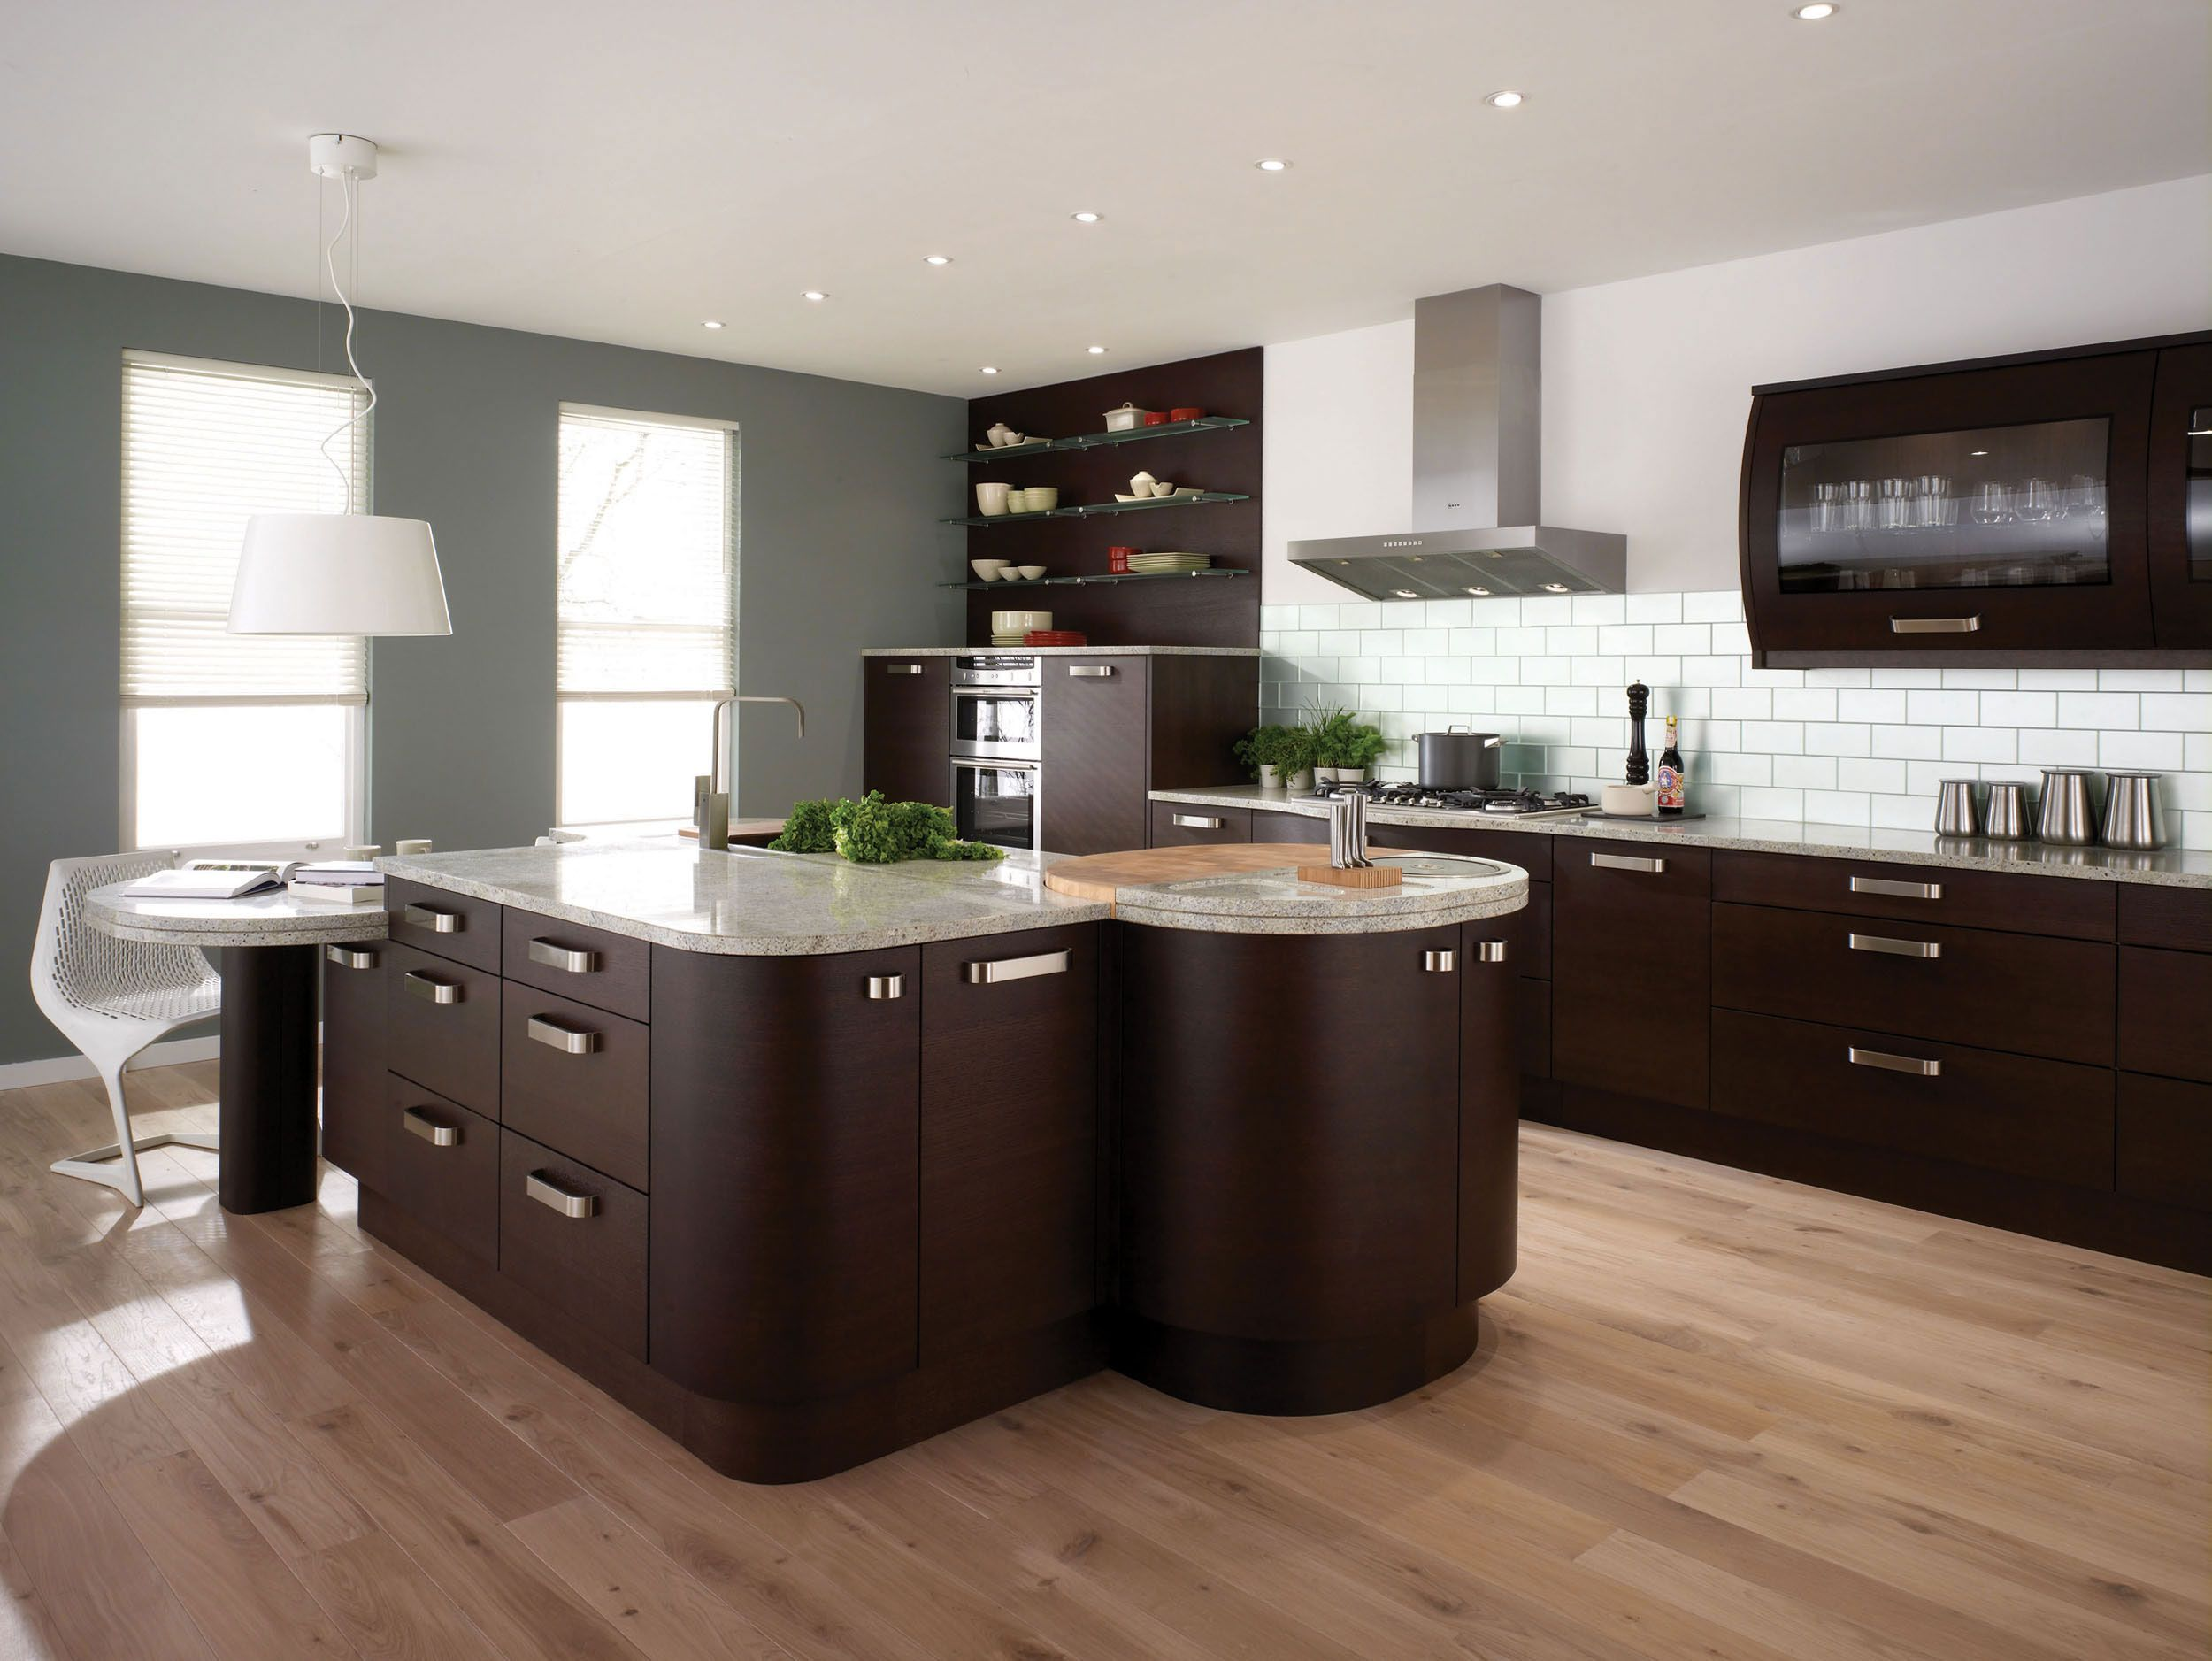 Great White Grey And Brown Kitchen With Brown Cabinet Big